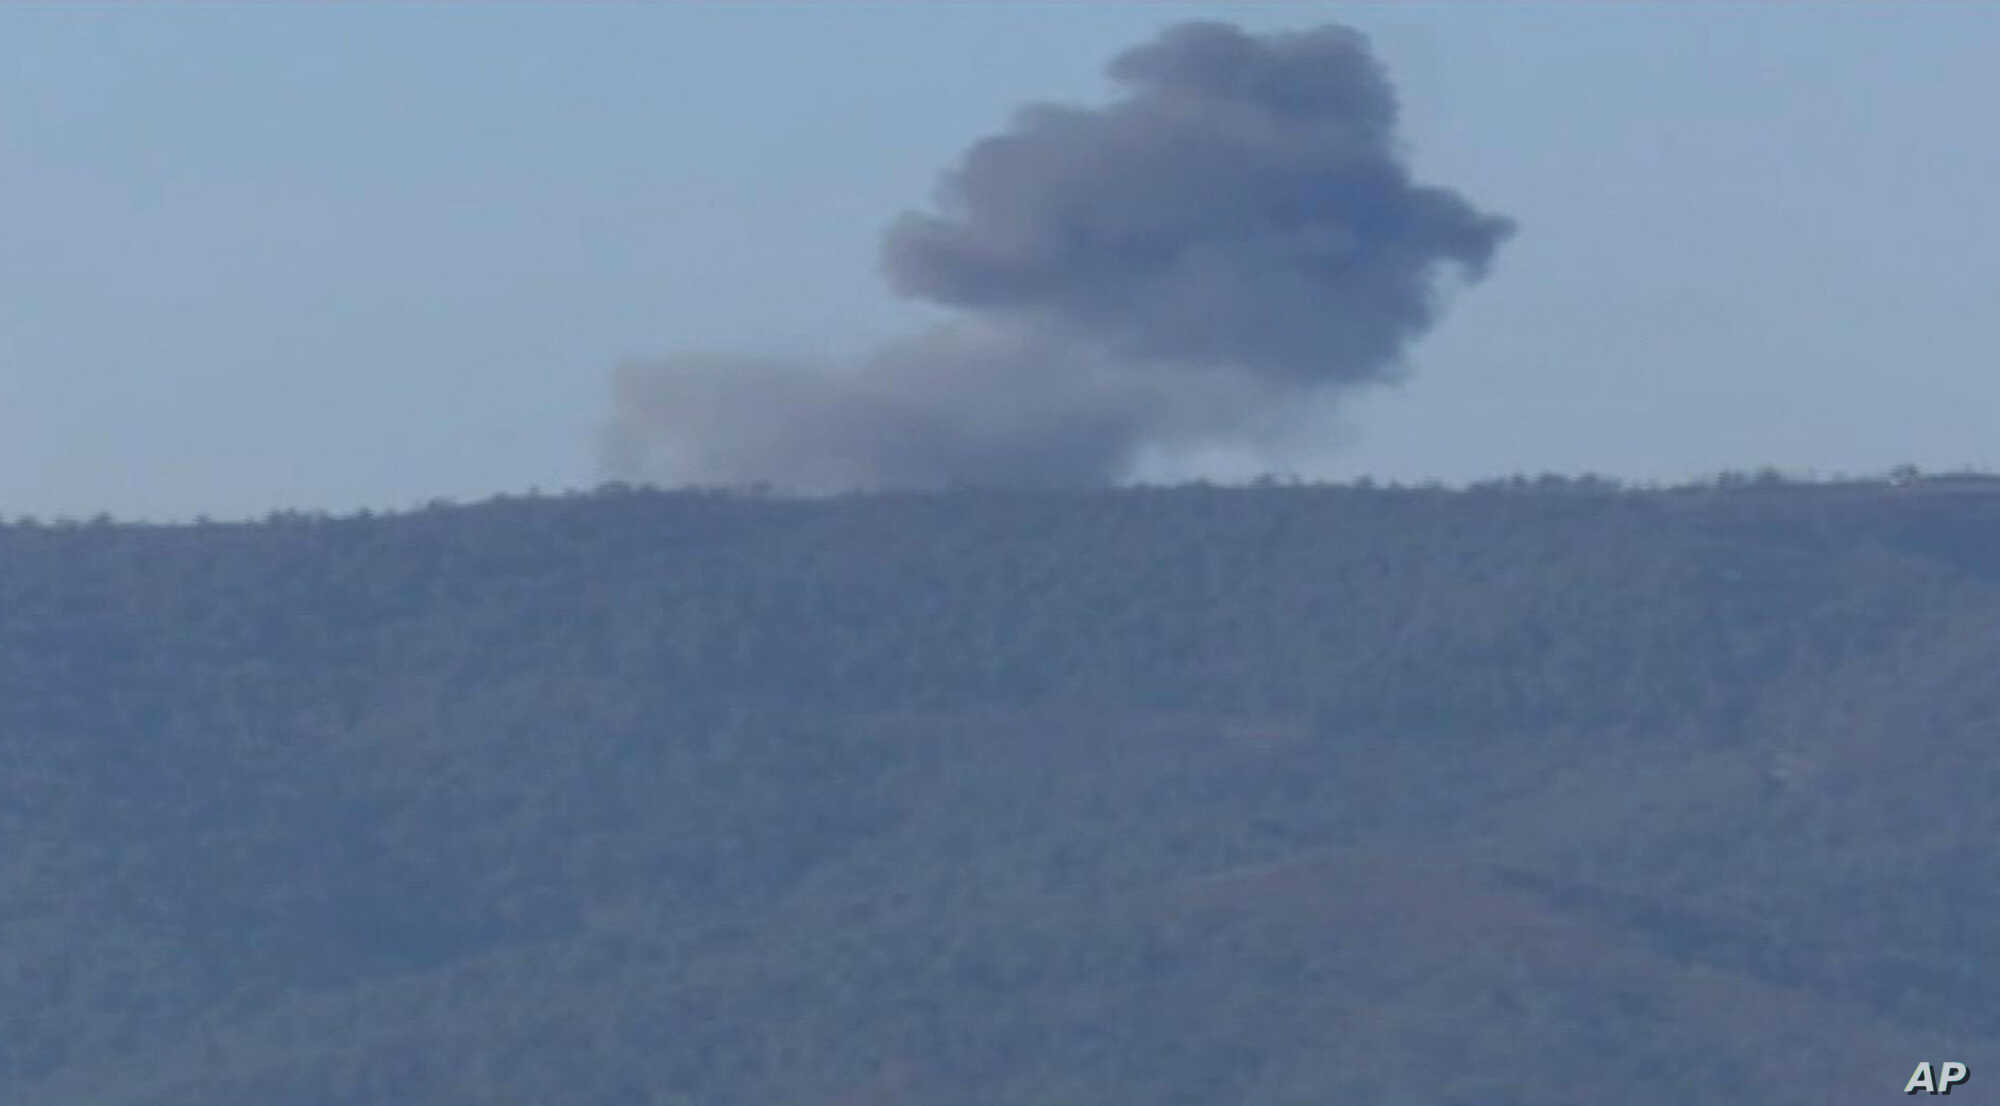 This frame grab from video by Haberturk TV, shows smoke from a Russian warplane after crashing on a hill as seen from Hatay province, Turkey, Nov. 24, 2015.